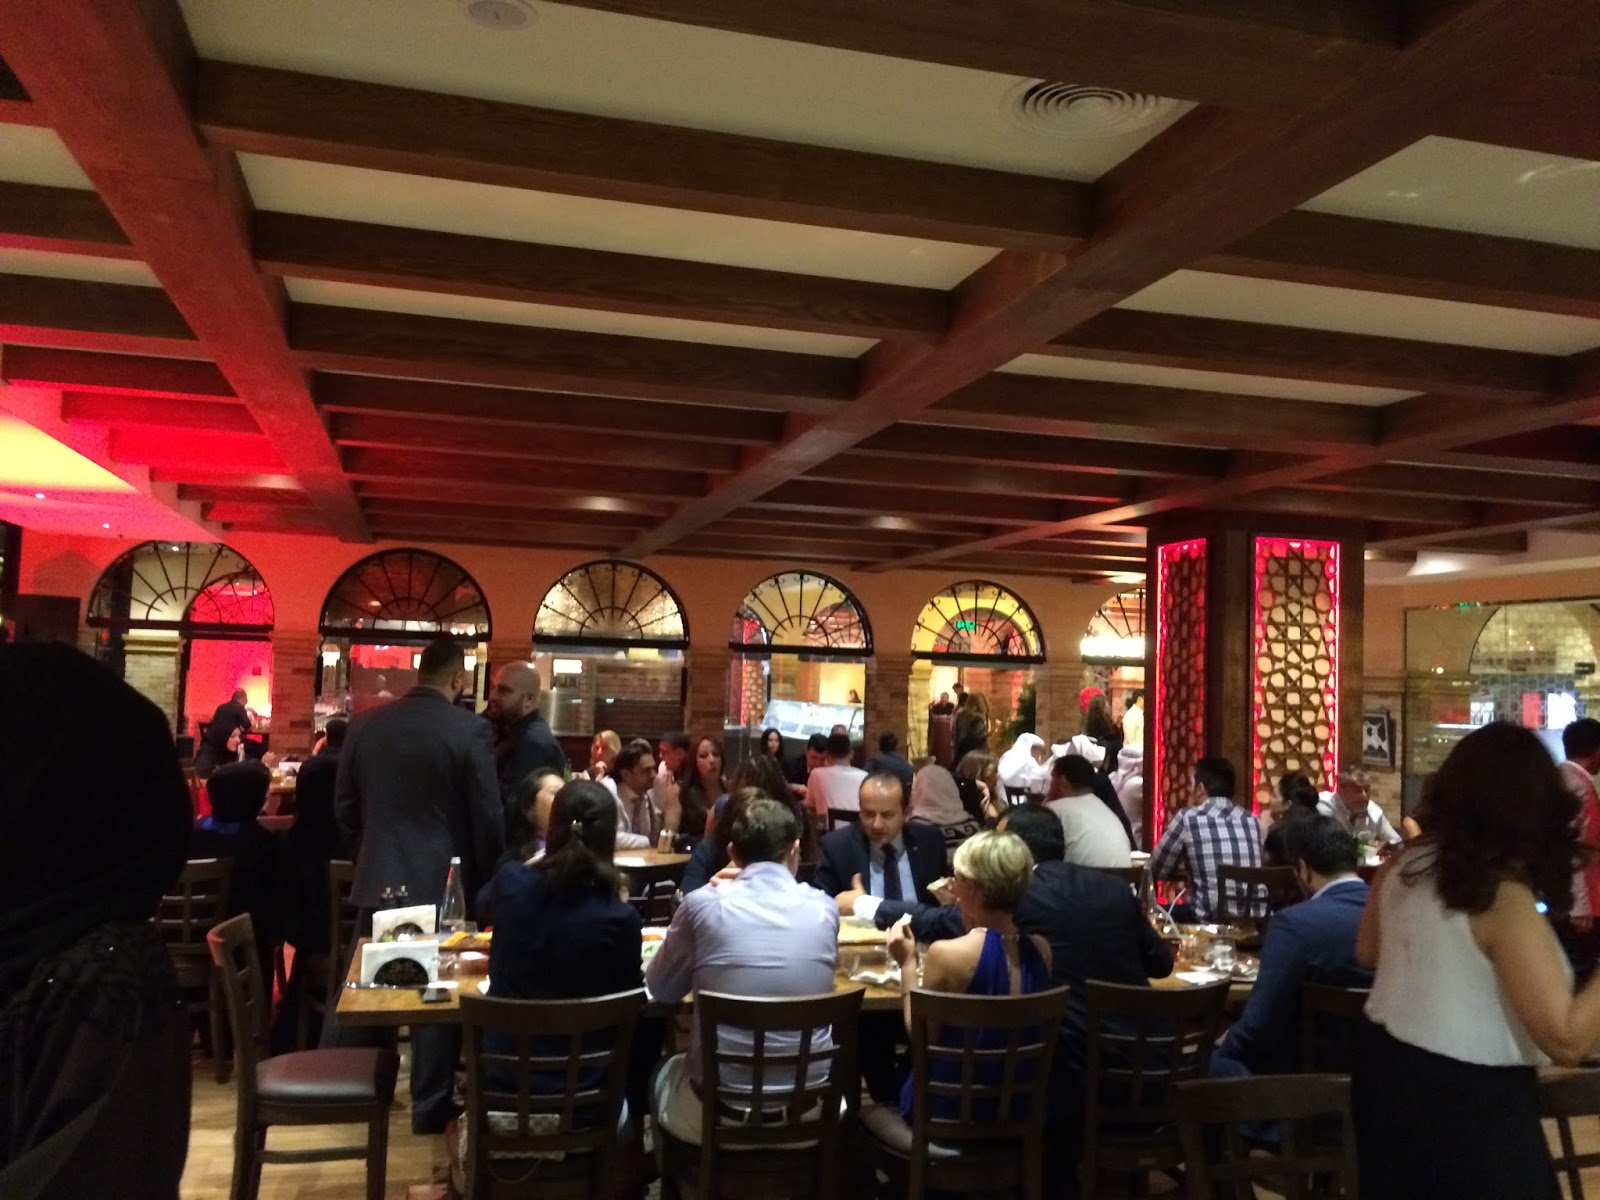 Busy Restaurant Scene The Was Utterly And Decor